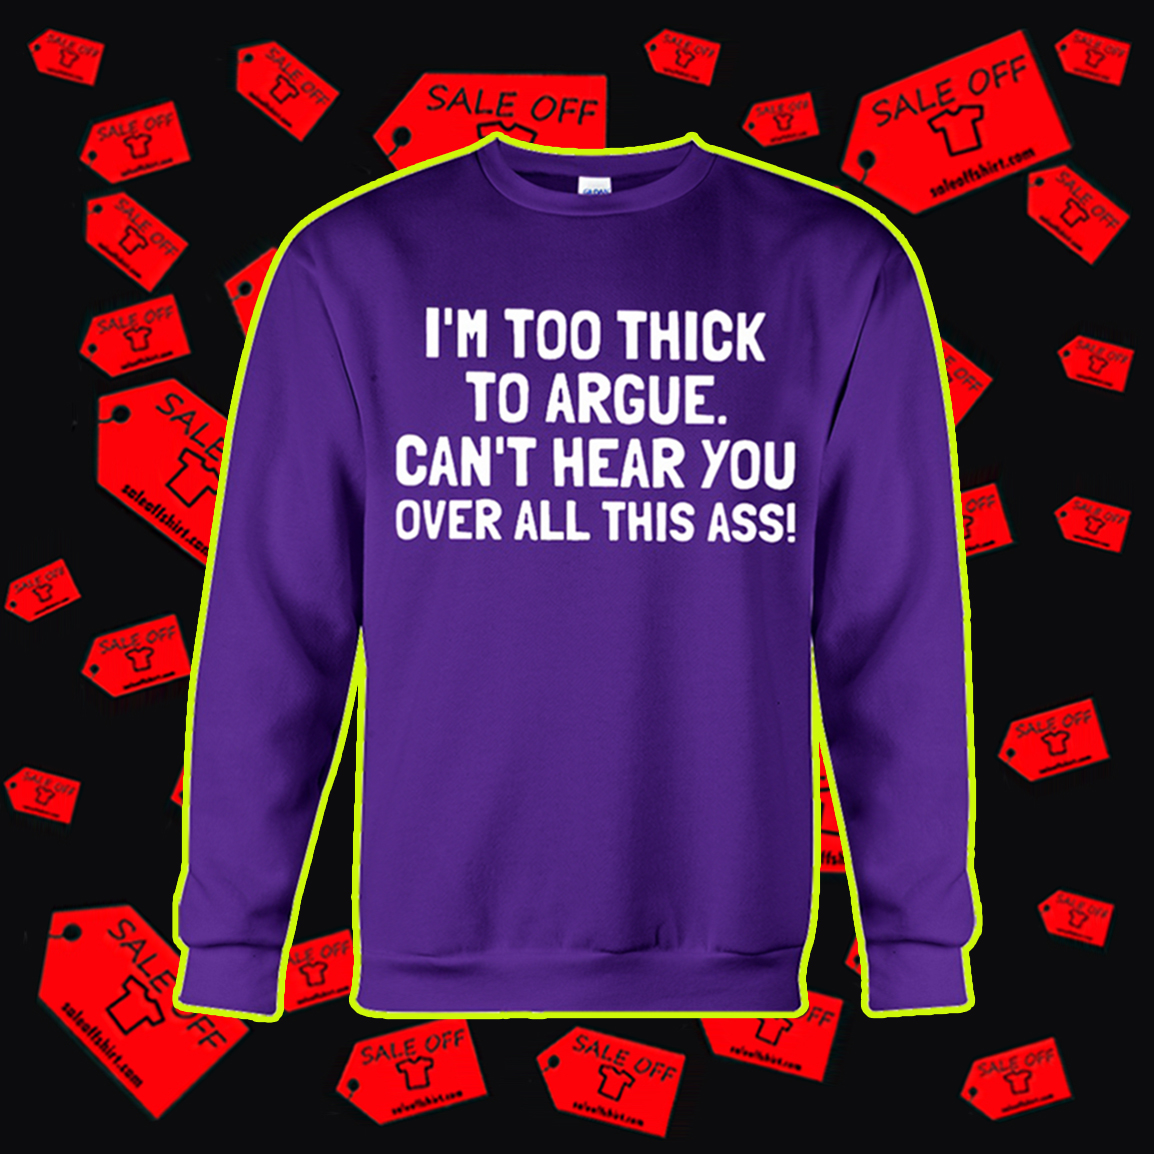 I'm too thick to argue can't hear you over all this ass sweatshirt